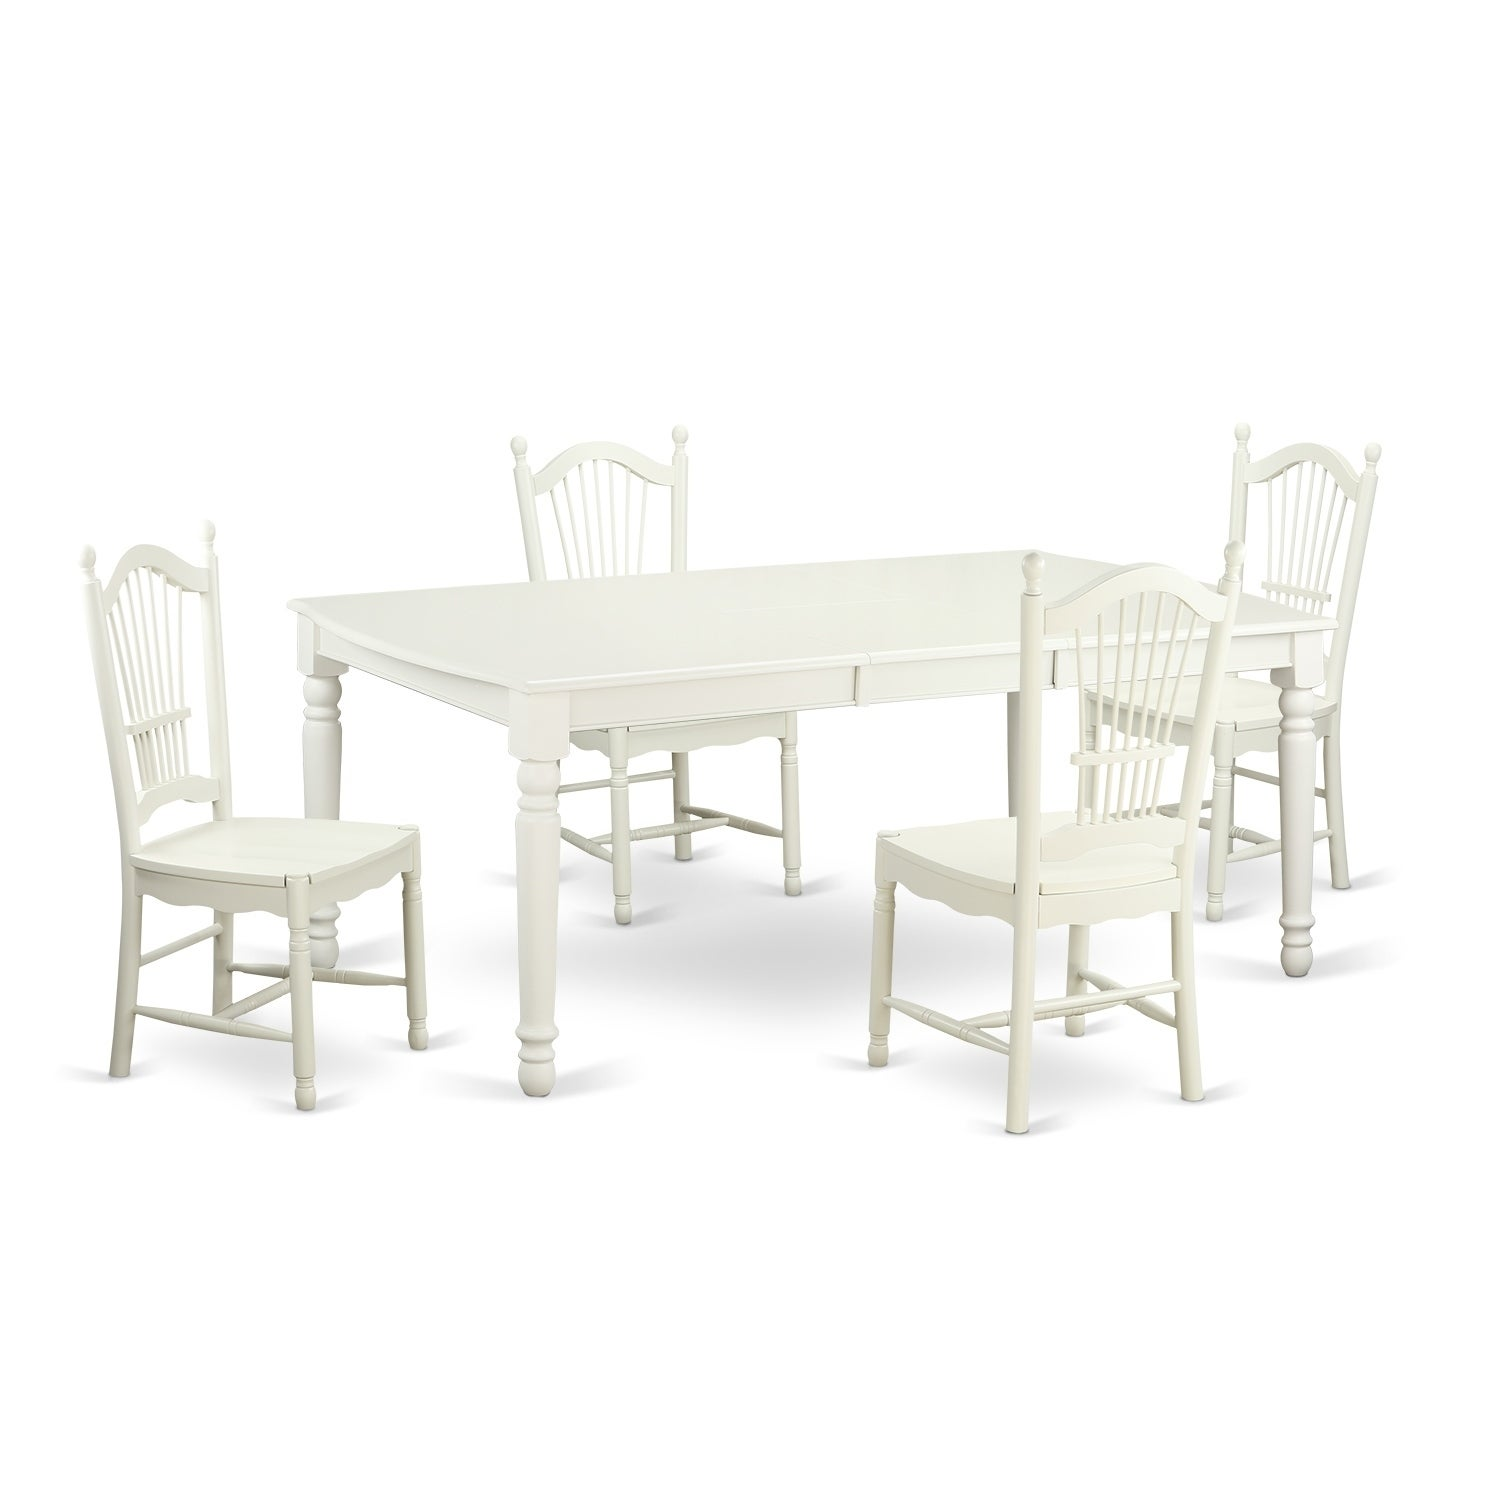 DOVE5-W 5 Pc dinette set - dinette Table and 4 Kitchen Dining Chairs ...